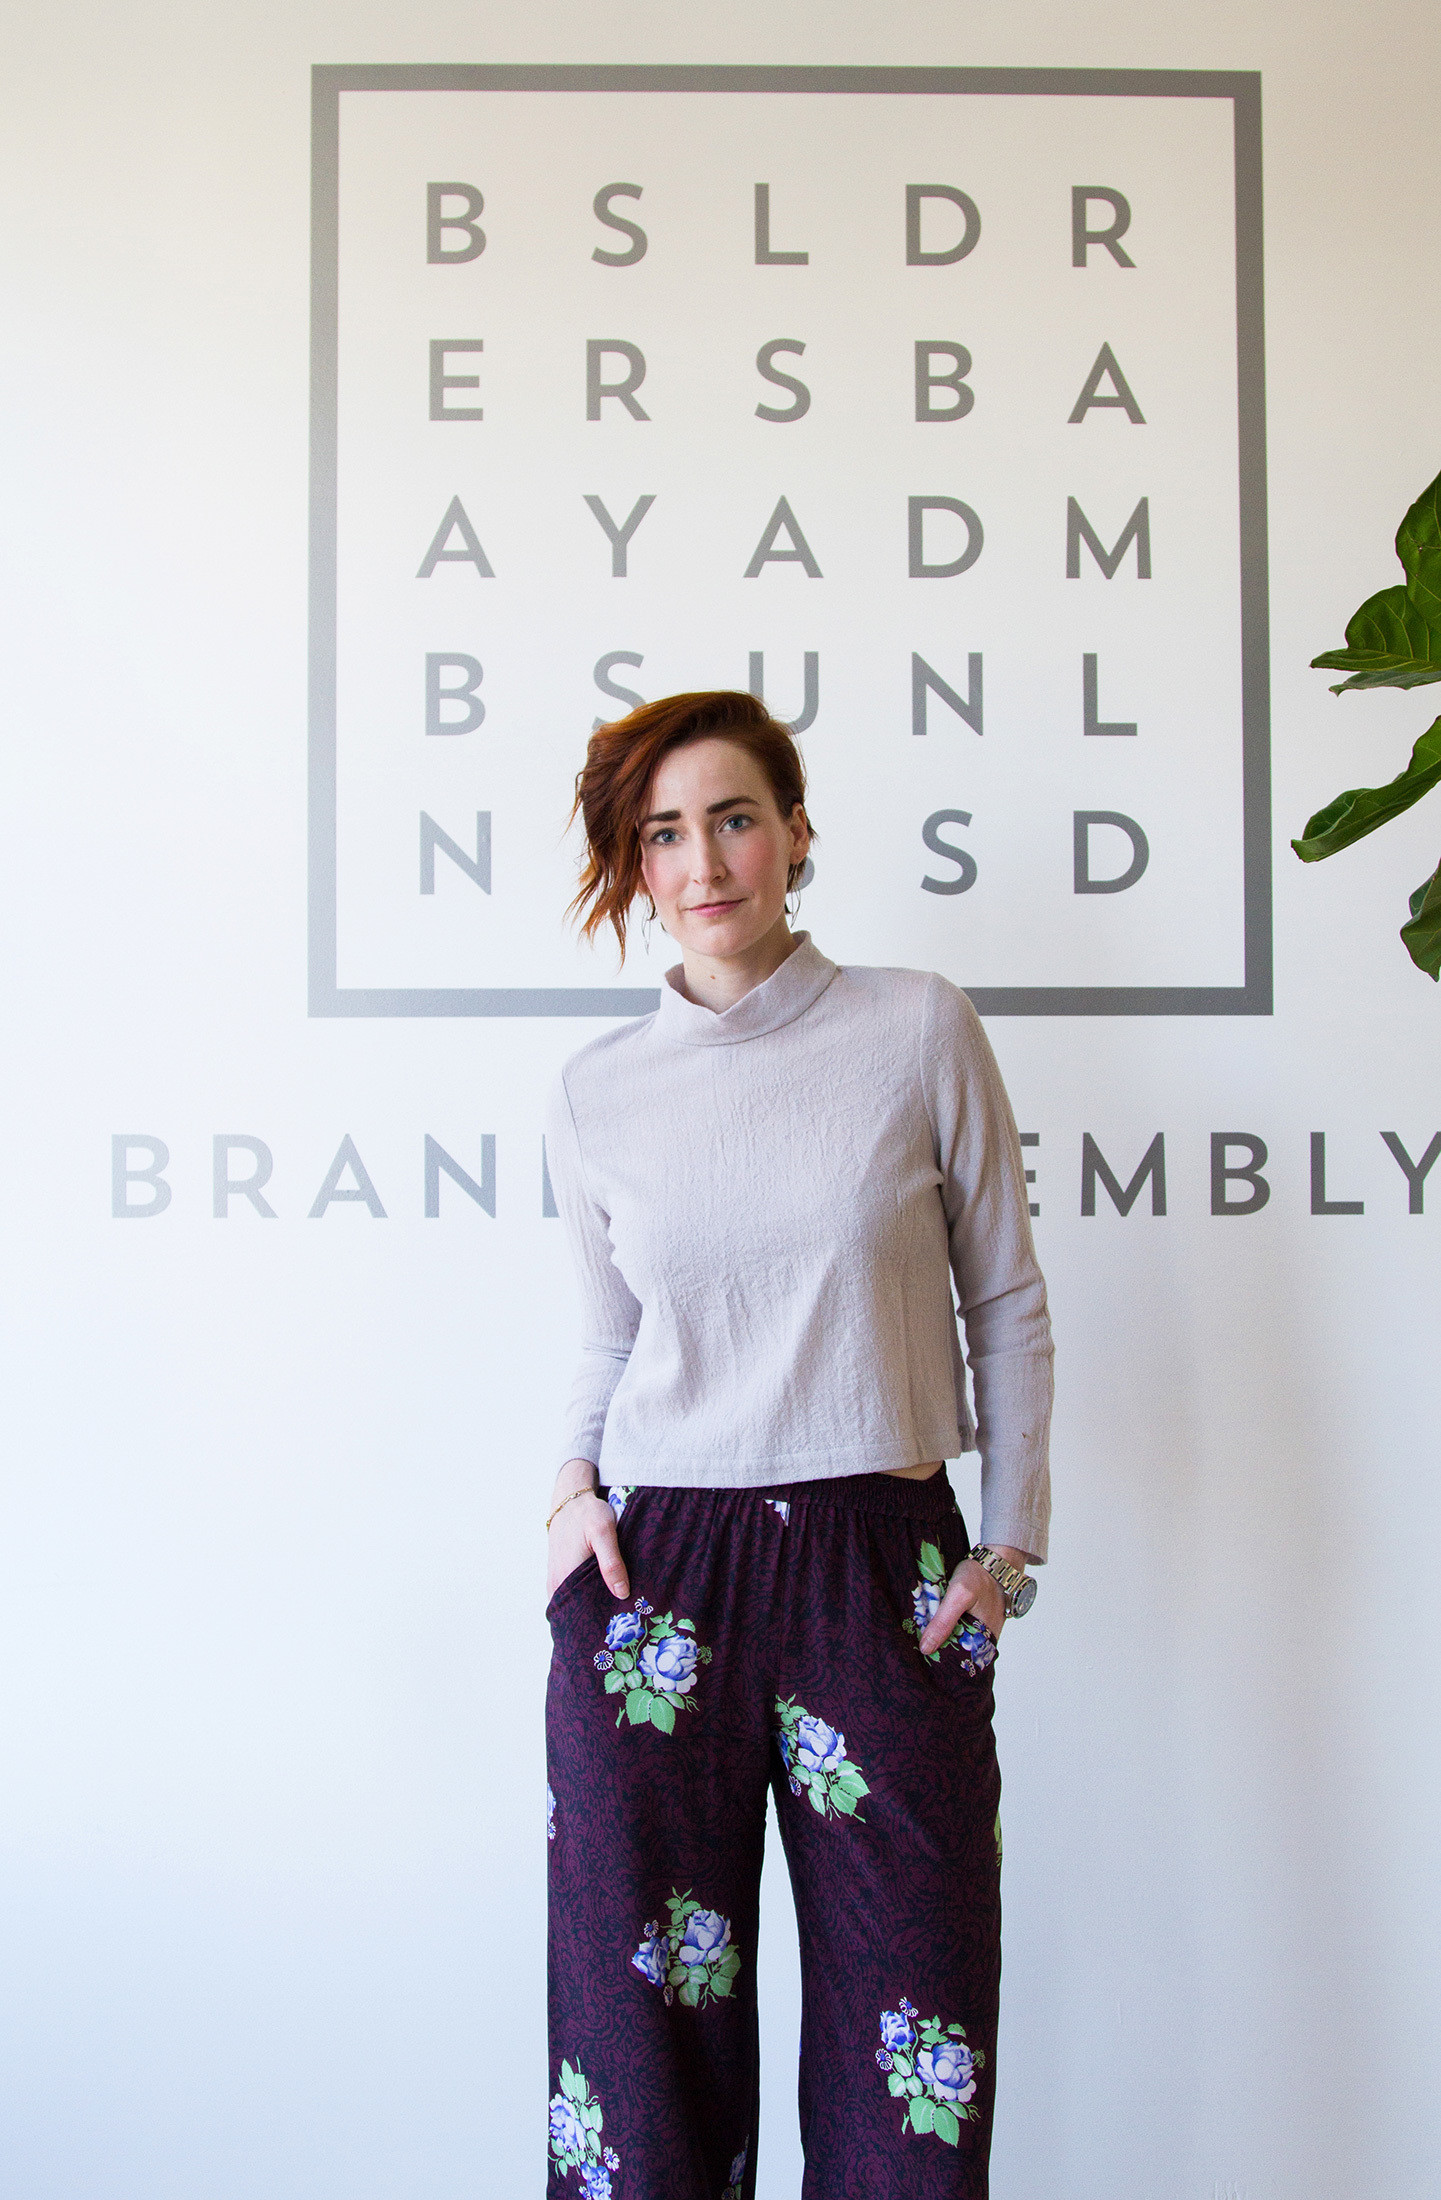 Brand Assembly's founder Hillary France at the entrance to Brand Assembly Square in New York. The fashion purveyor is stylishly clad in pants from Svilu and top from Silvae.